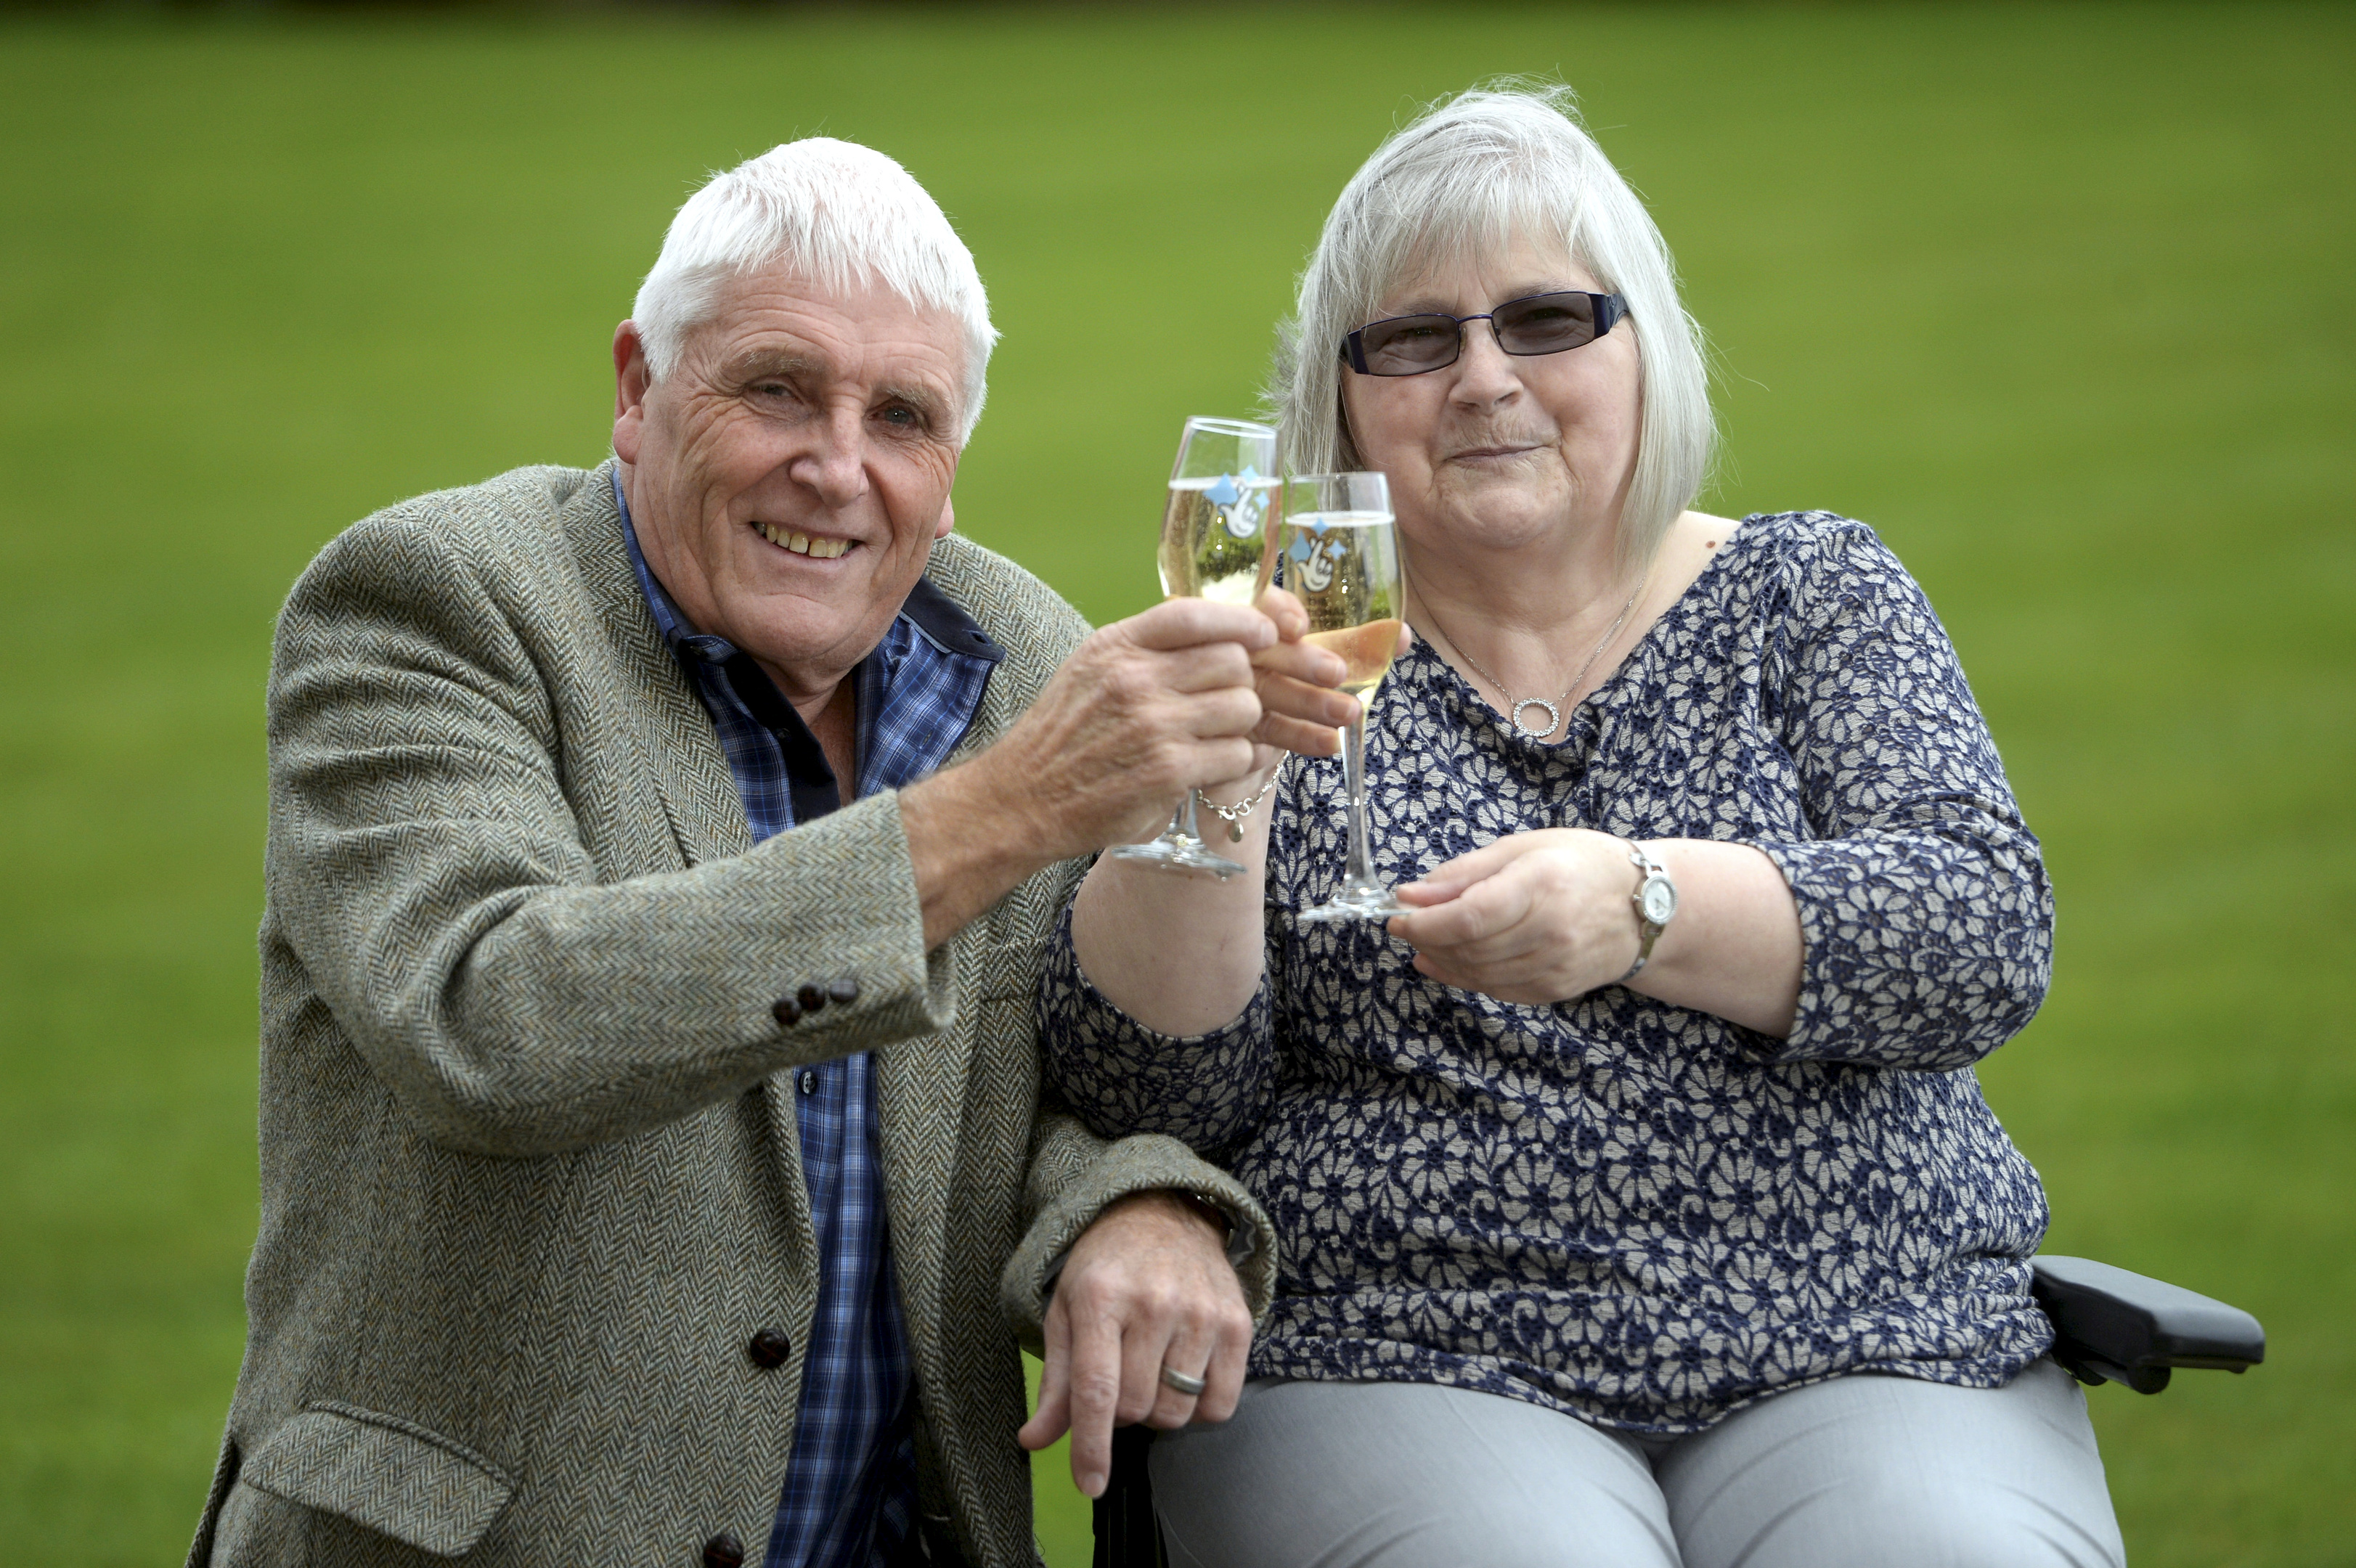 Tommy and Linda Parker have won a massive £5,014,254 on the October 18 2017 Lotto draw.